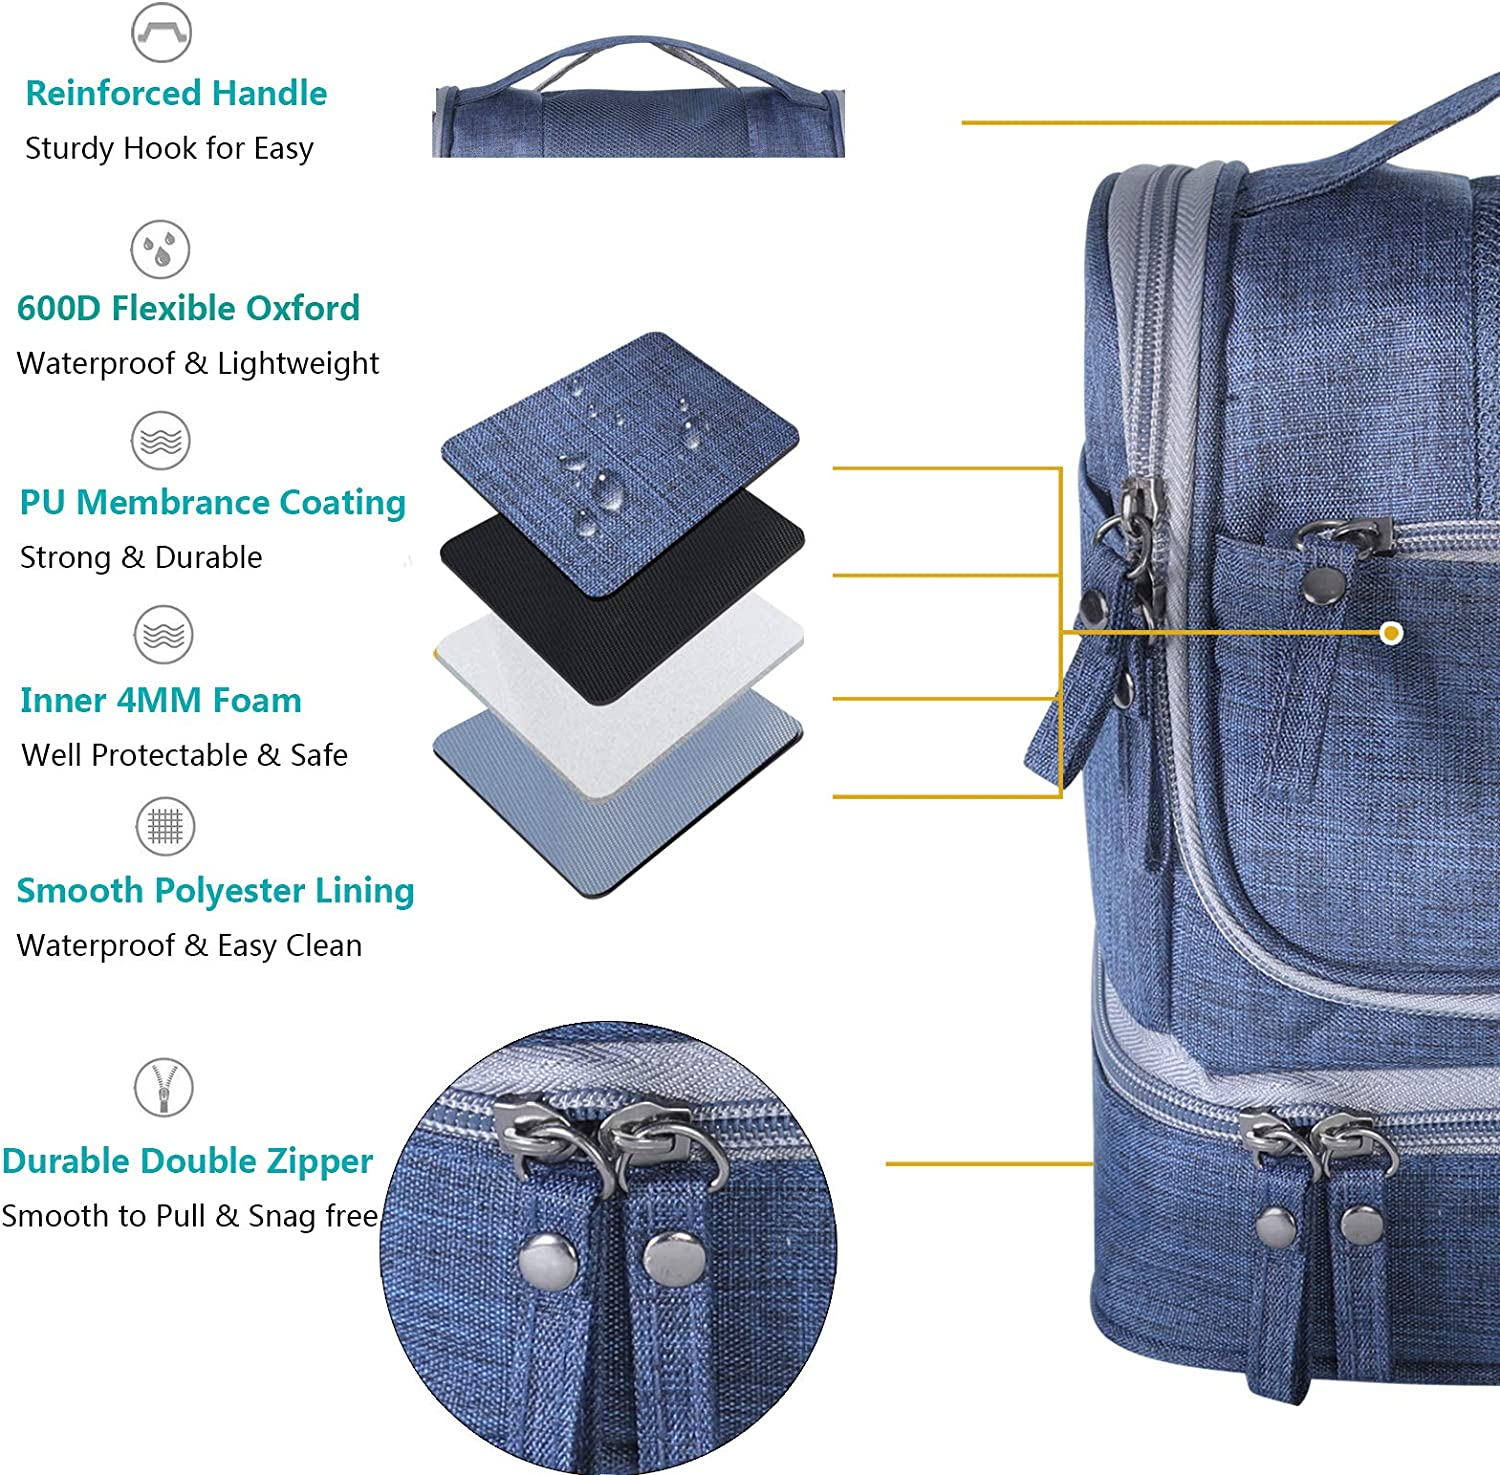 Hanging Travel Toiletry Bag for Men and Women – Multifuncation Waterproof Cosmetic Bag or Organizer Bag Portable Makeup Pouch by HOKEMP